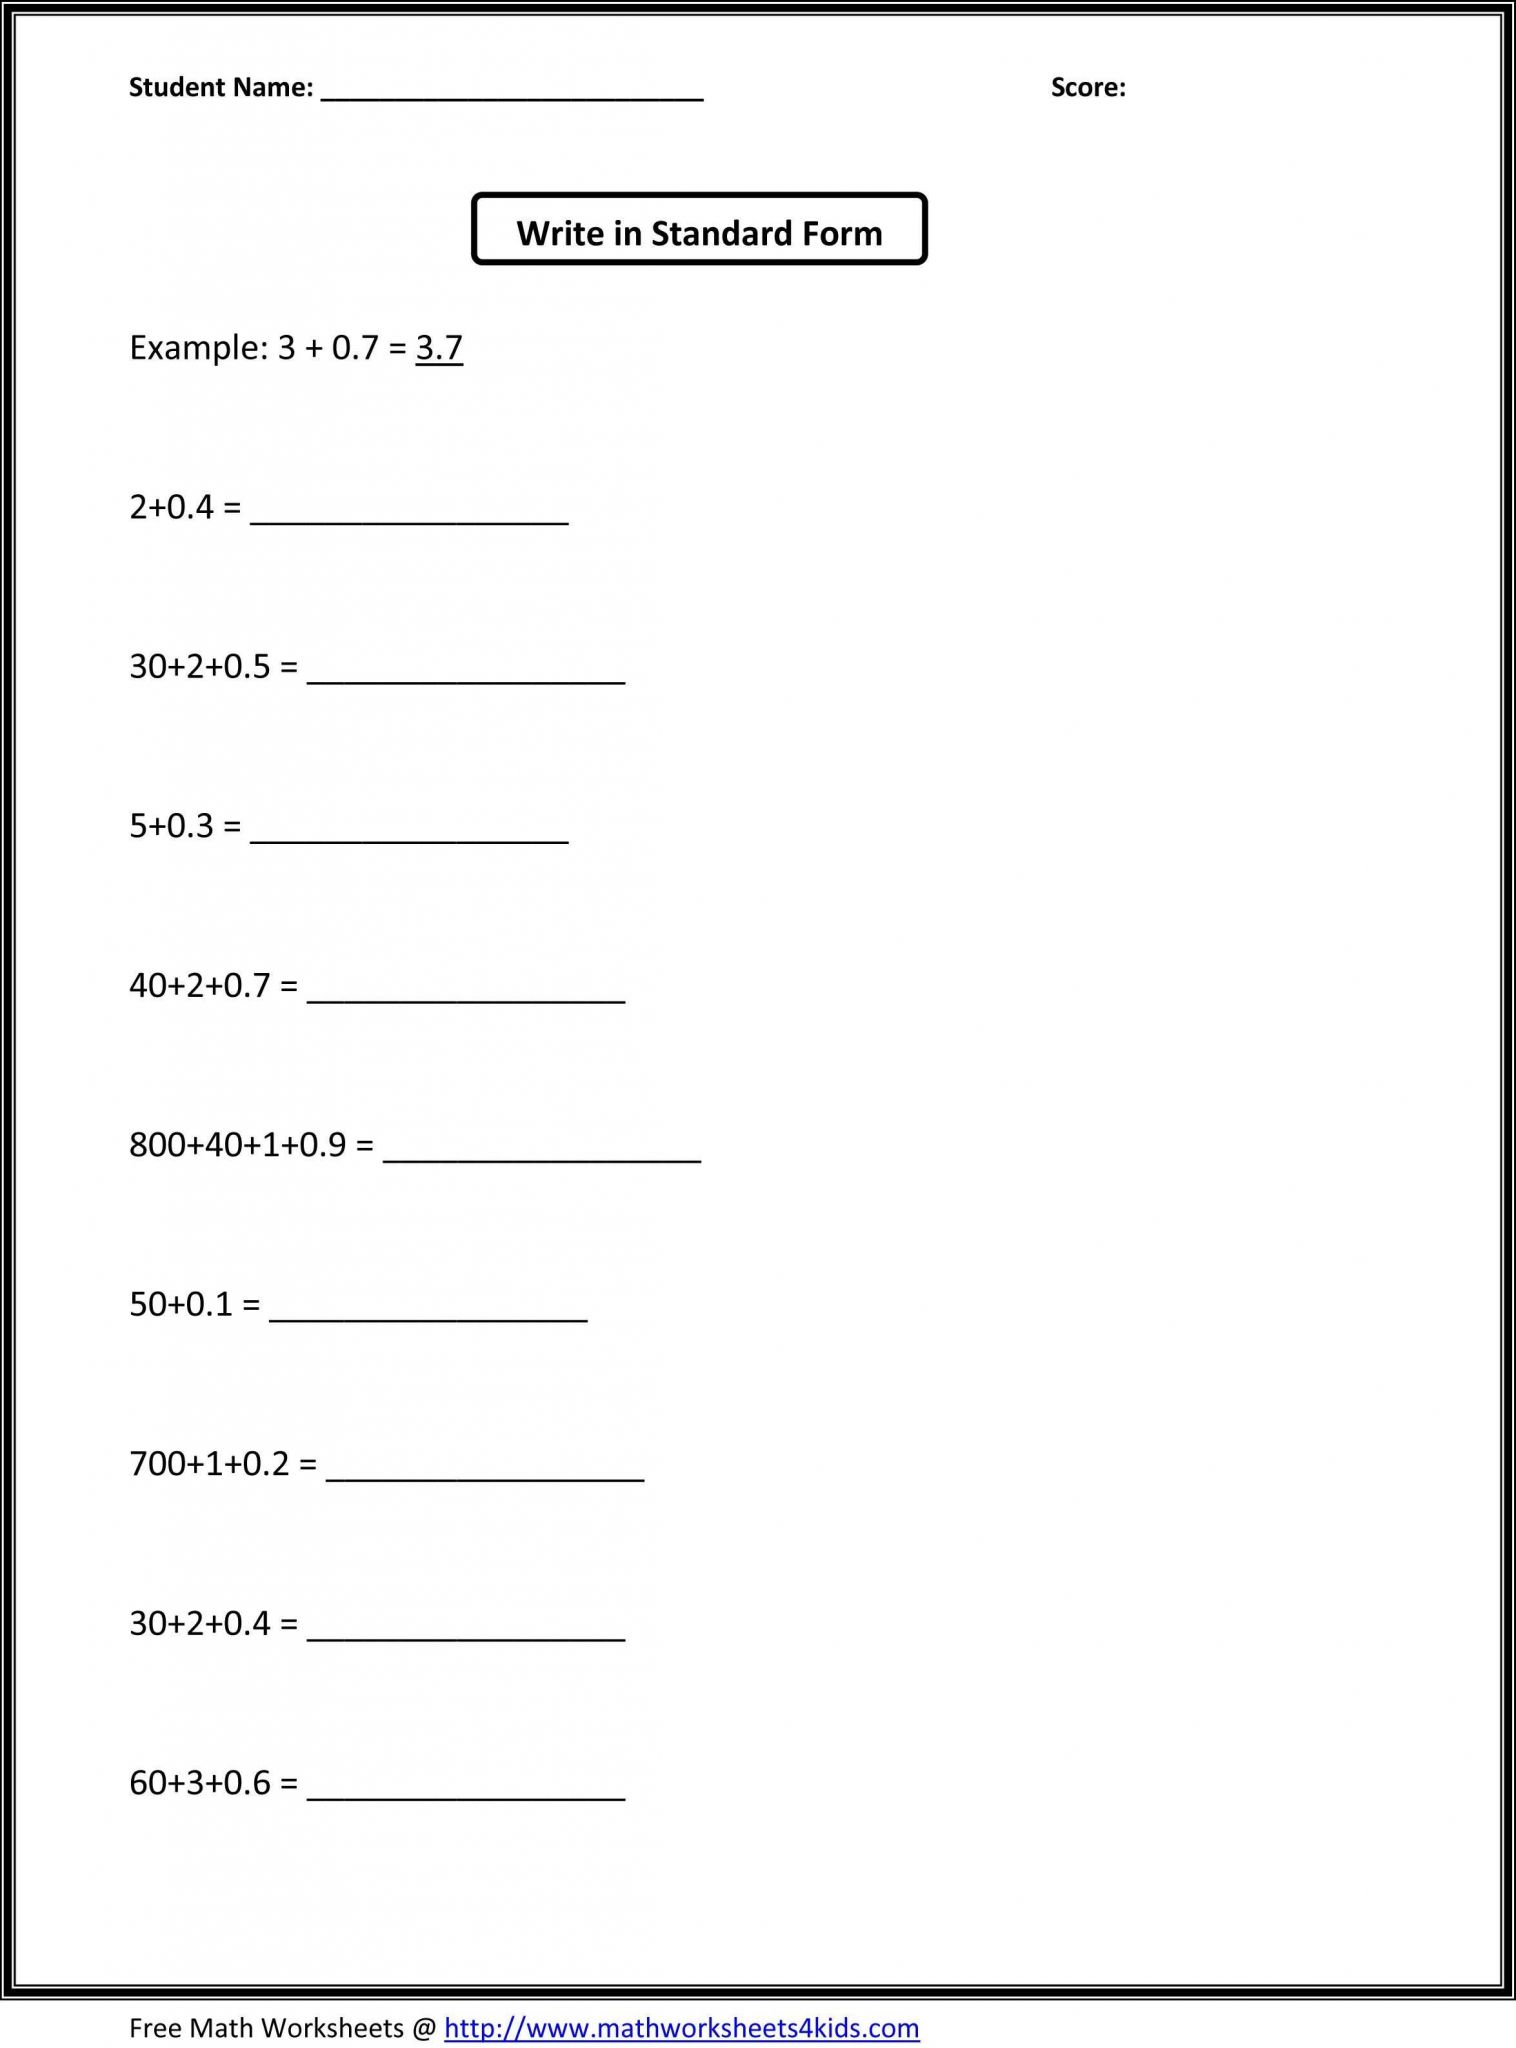 Compound Inequalities Worksheet Answers Also Inequality